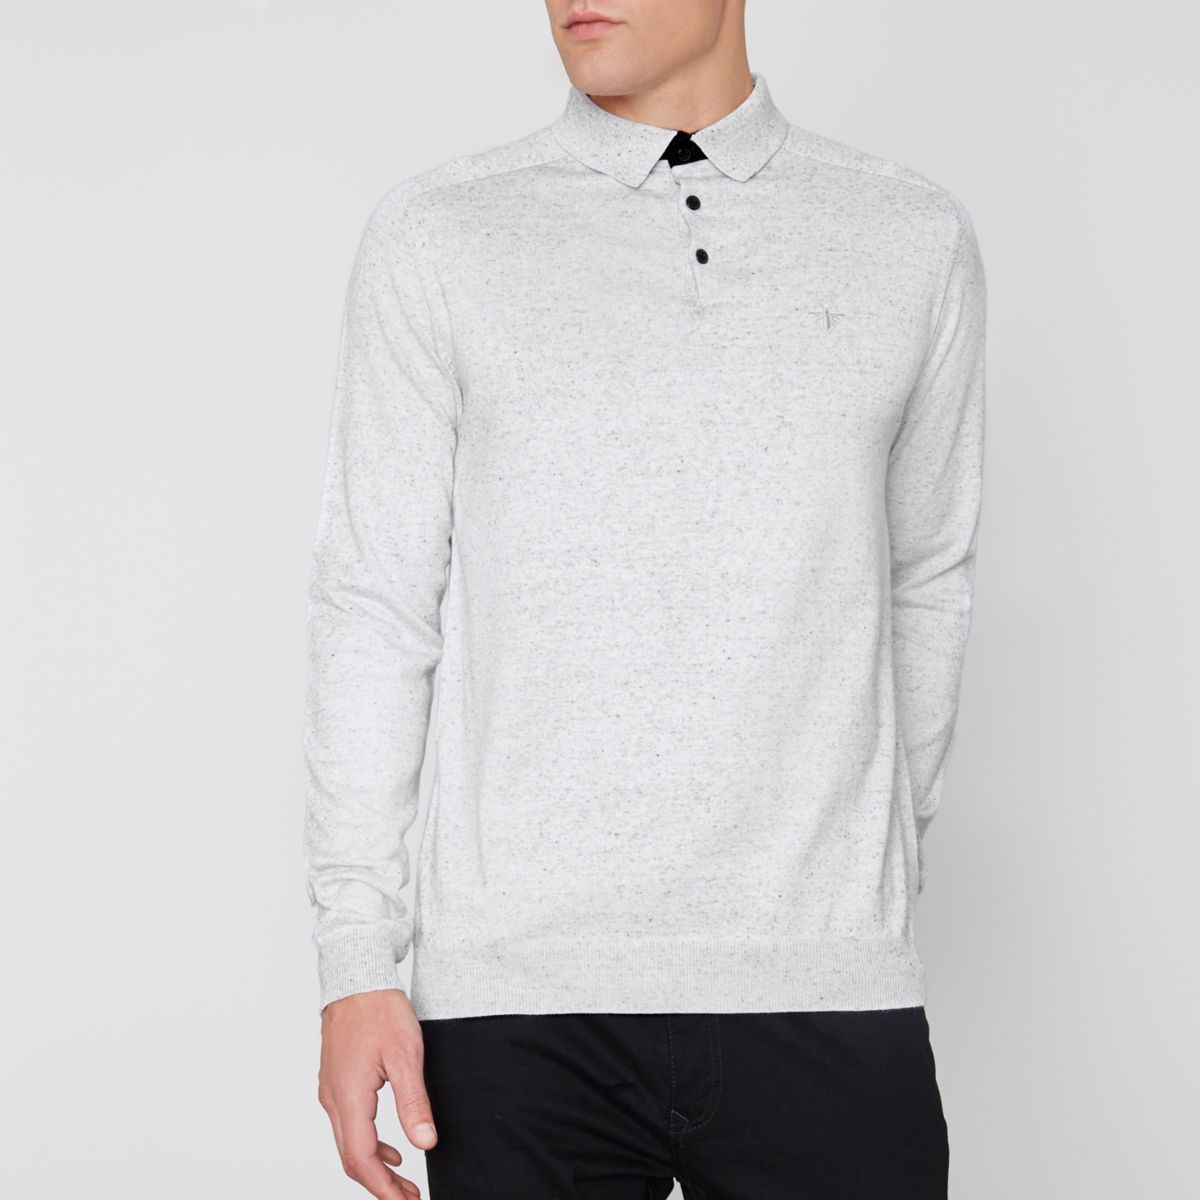 Light Grey Long Sleeve Knitted Polo Shirt Polo Shirts Men